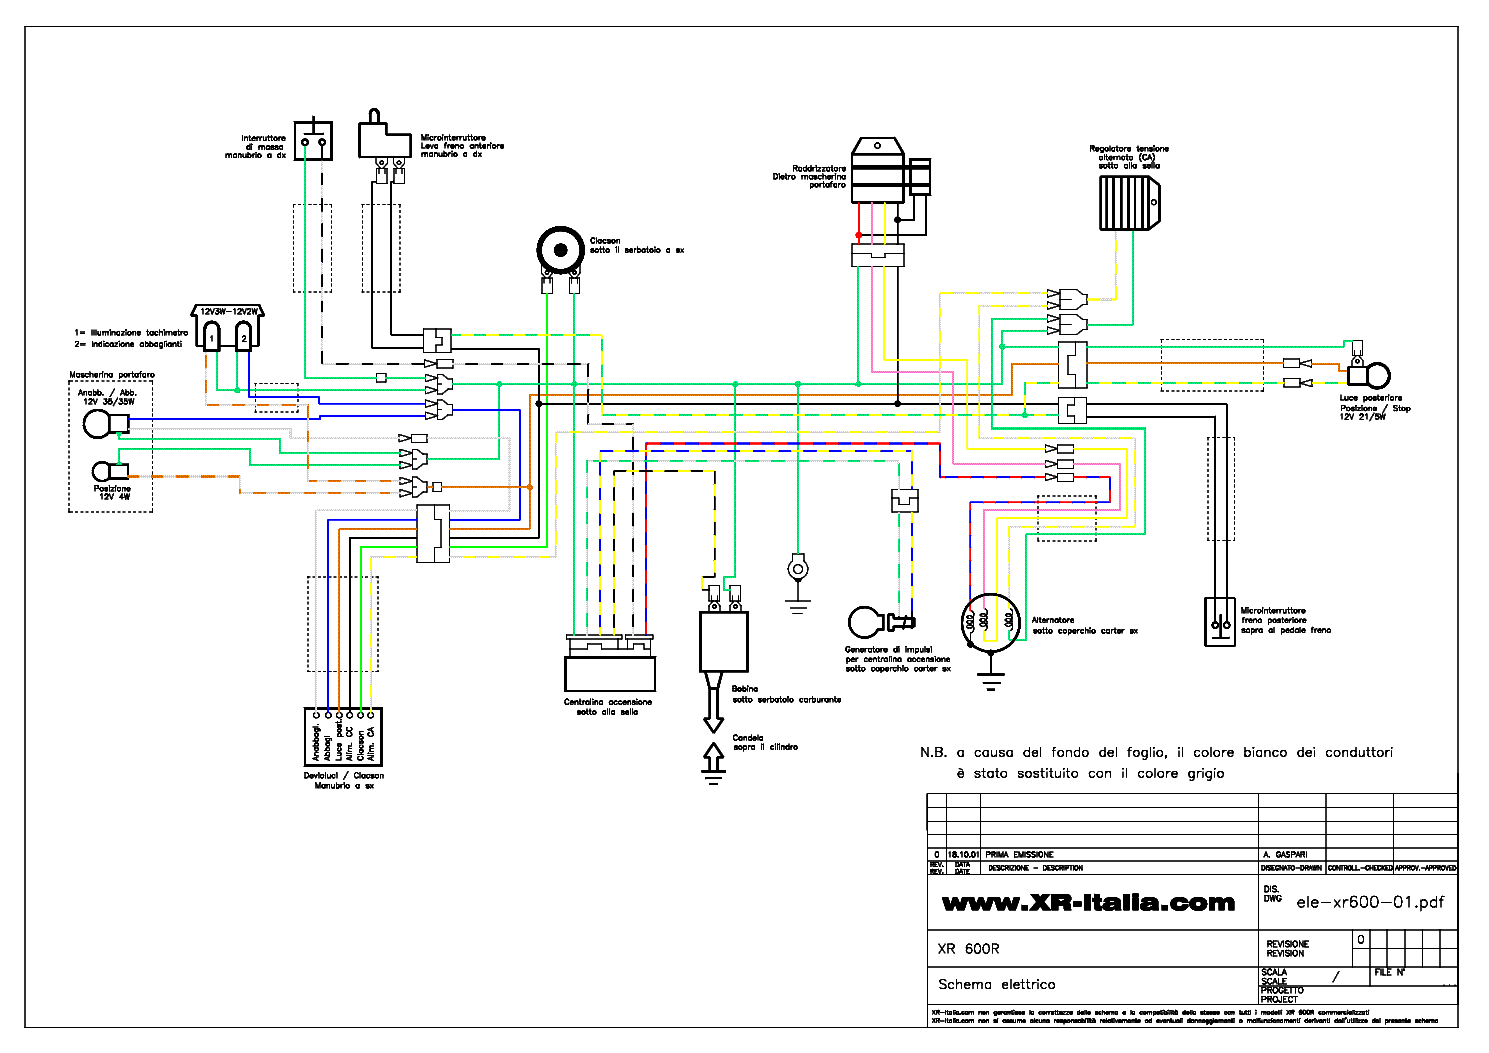 xr600 wiring diagram with honda xr 600 pdf 1 for and [ 1489 x 1053 Pixel ]